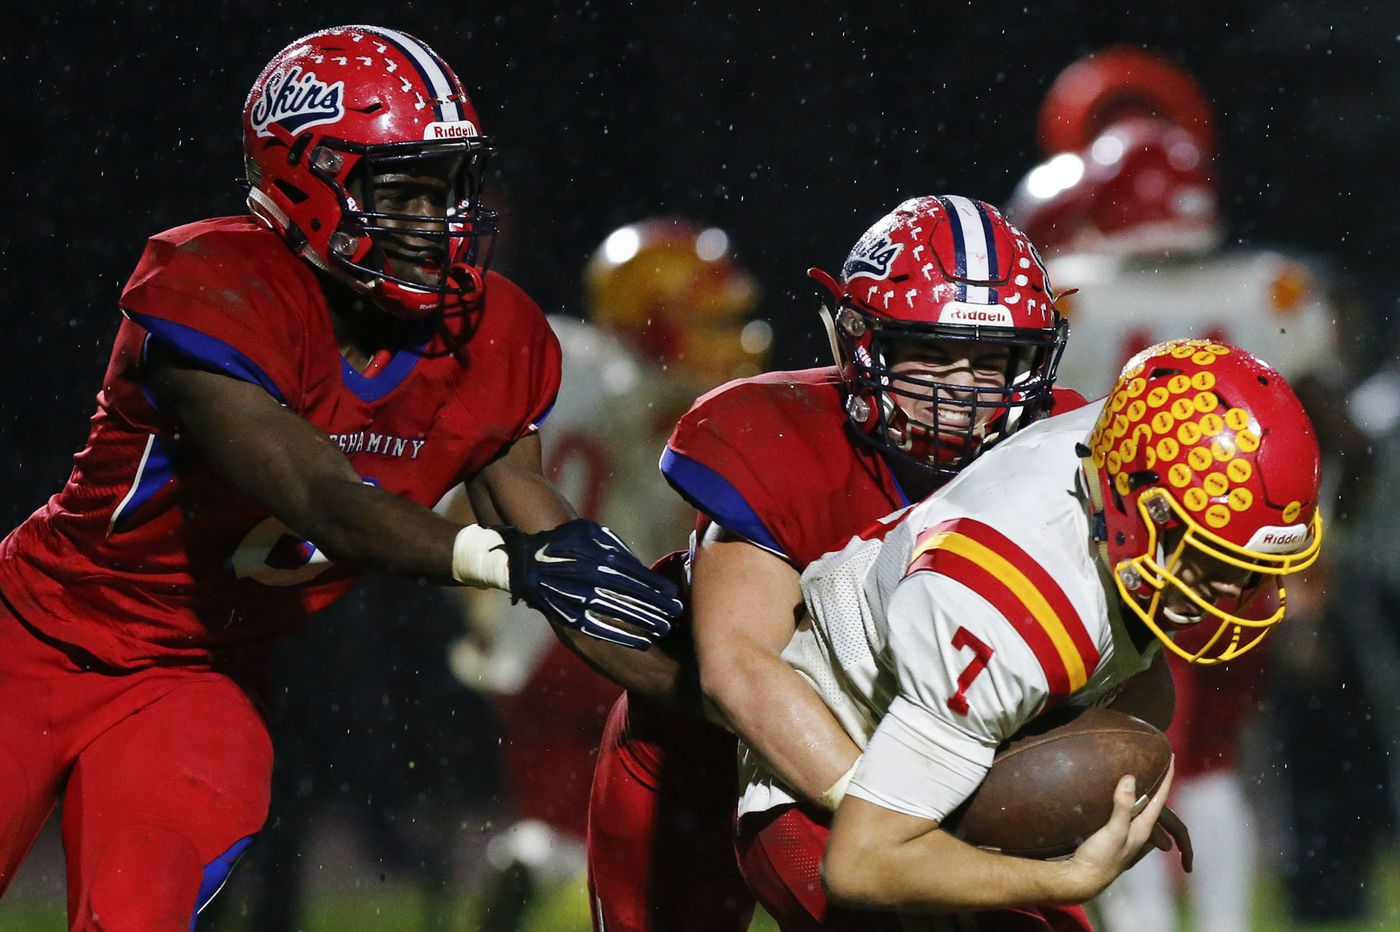 Cory Joyce, Neshaminy dominate Haverford High in football playoff opener